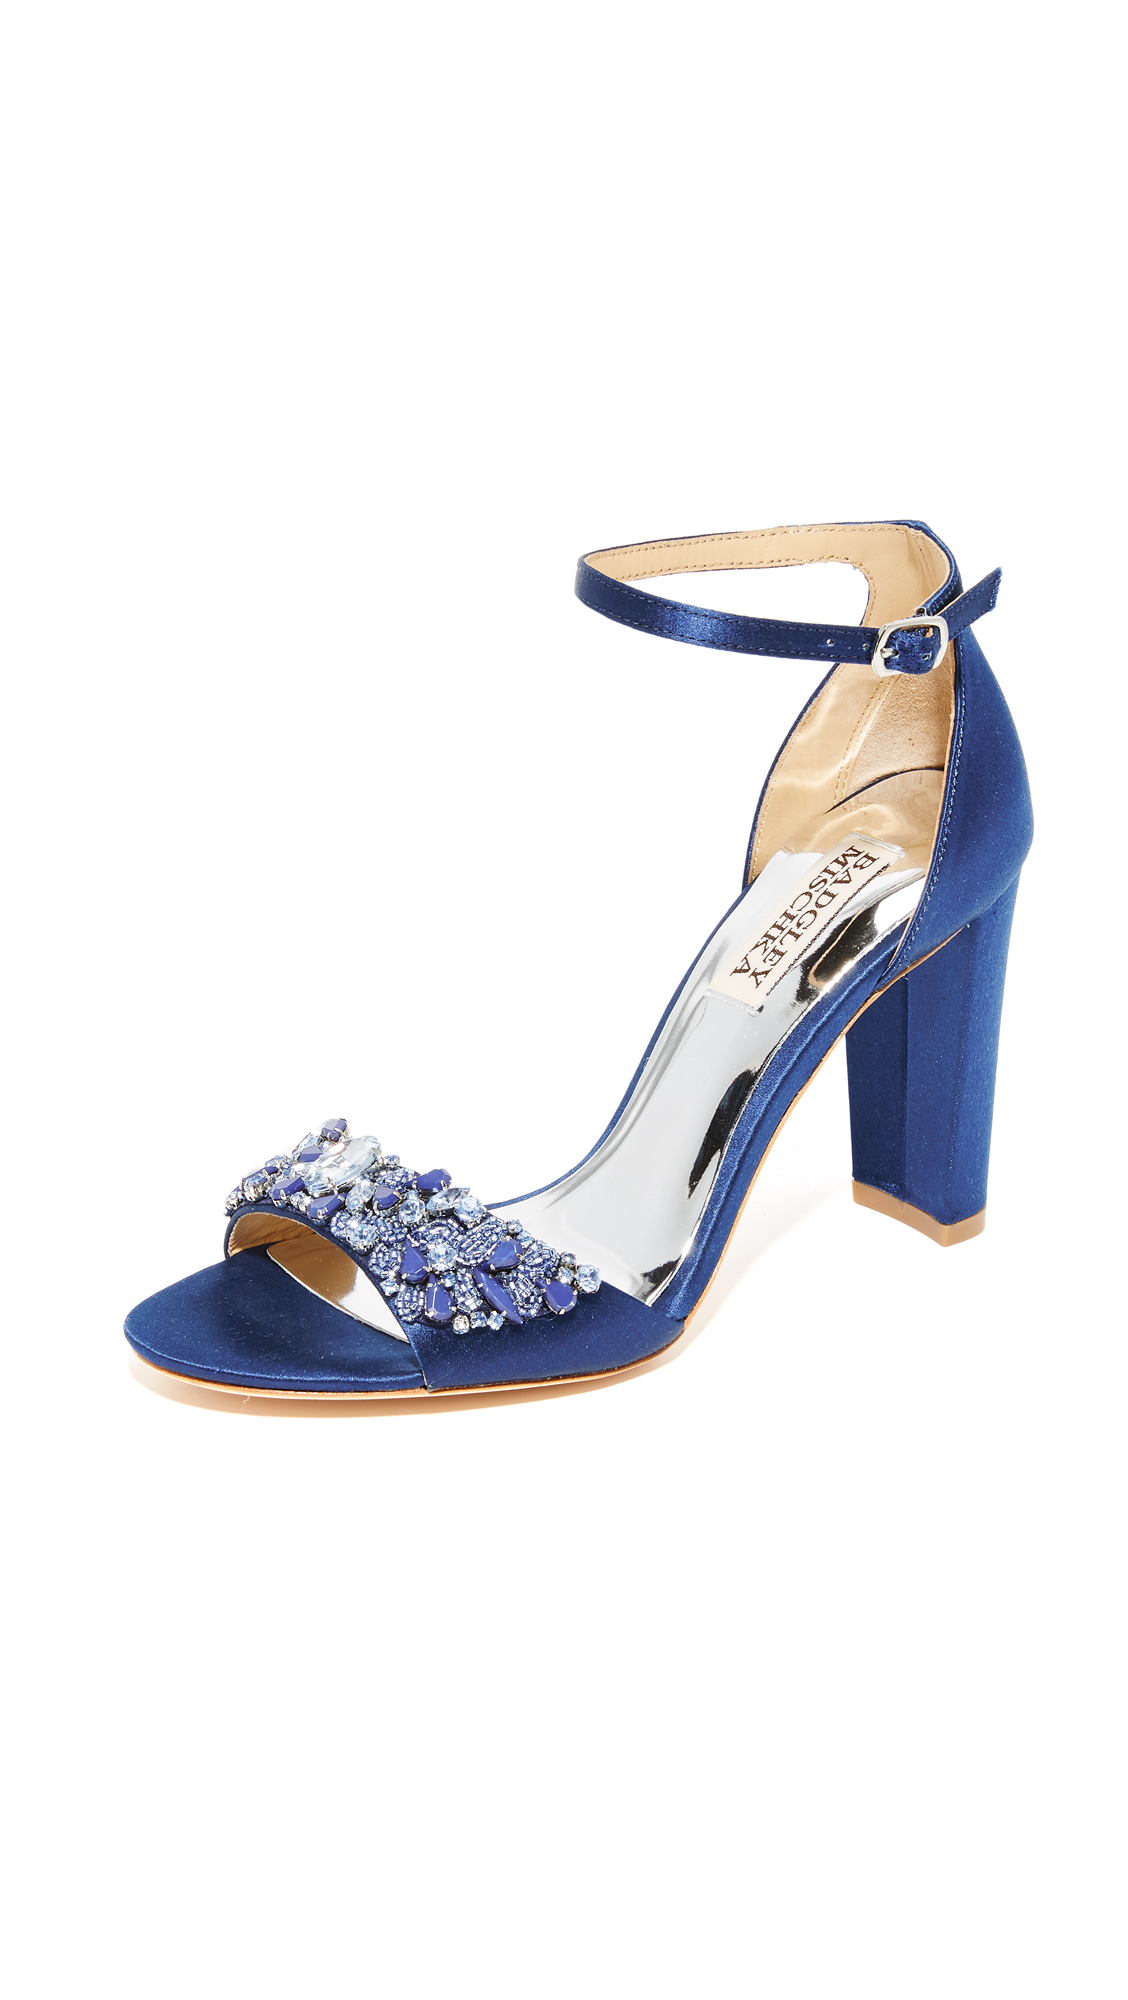 badgley mischka female badgley mischka barby sandals navy